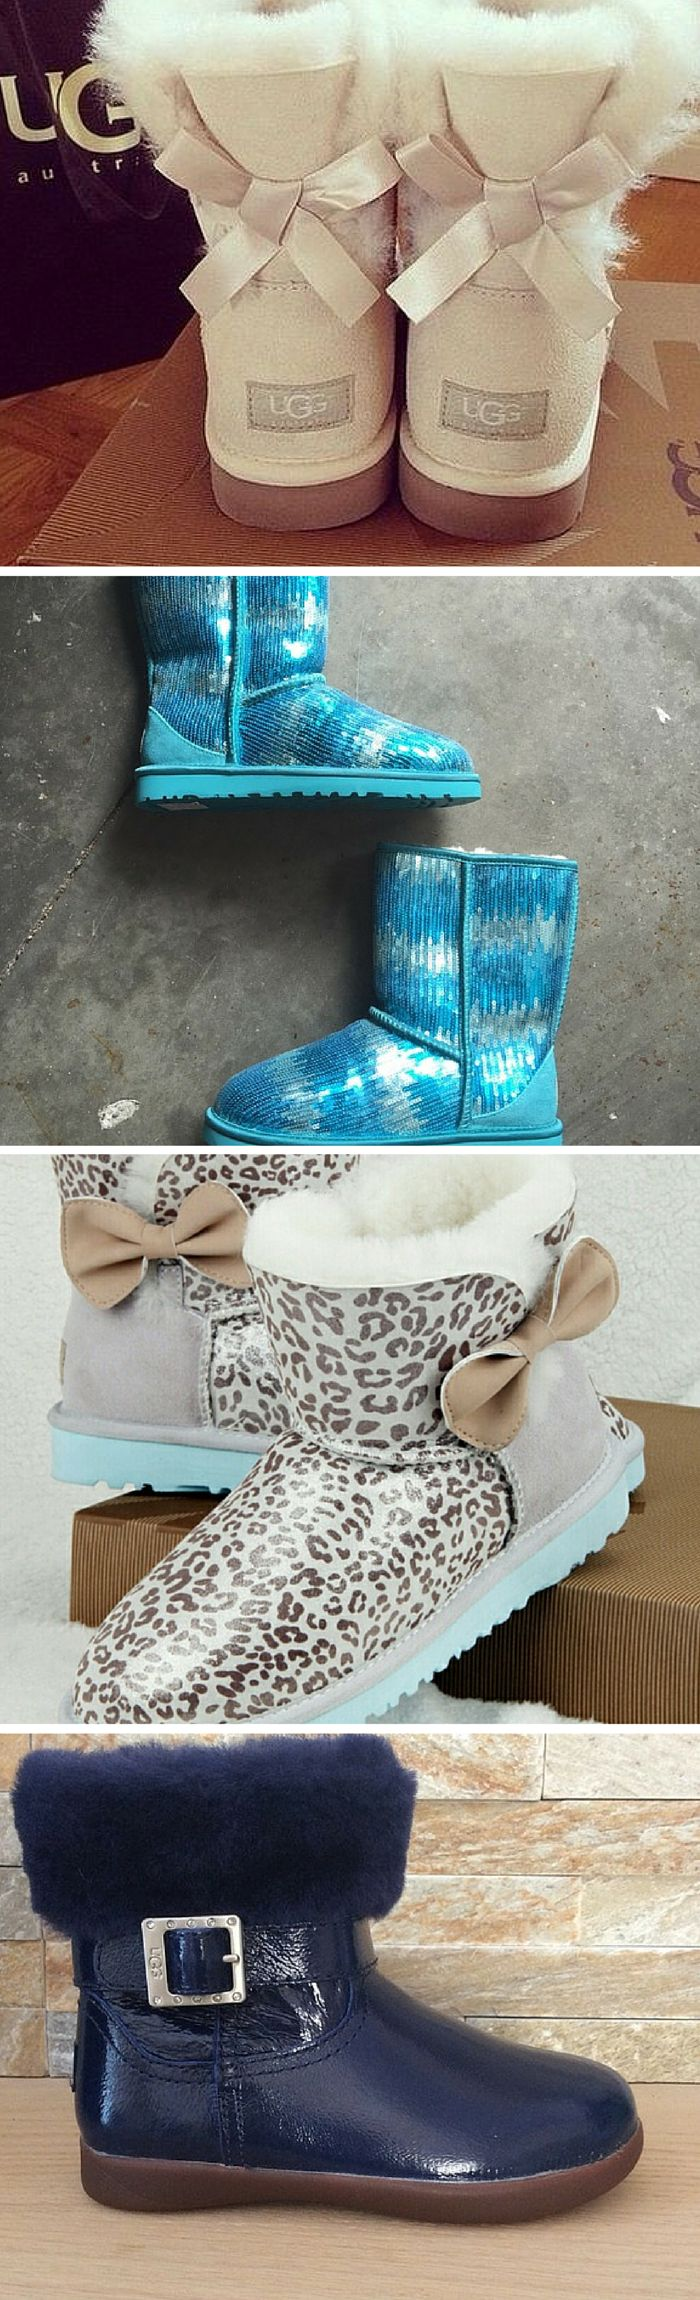 Shop UGG at up to 70% off! Click image to install the FREE app now. Poshmark is featured in Good Morning America & MTV News.